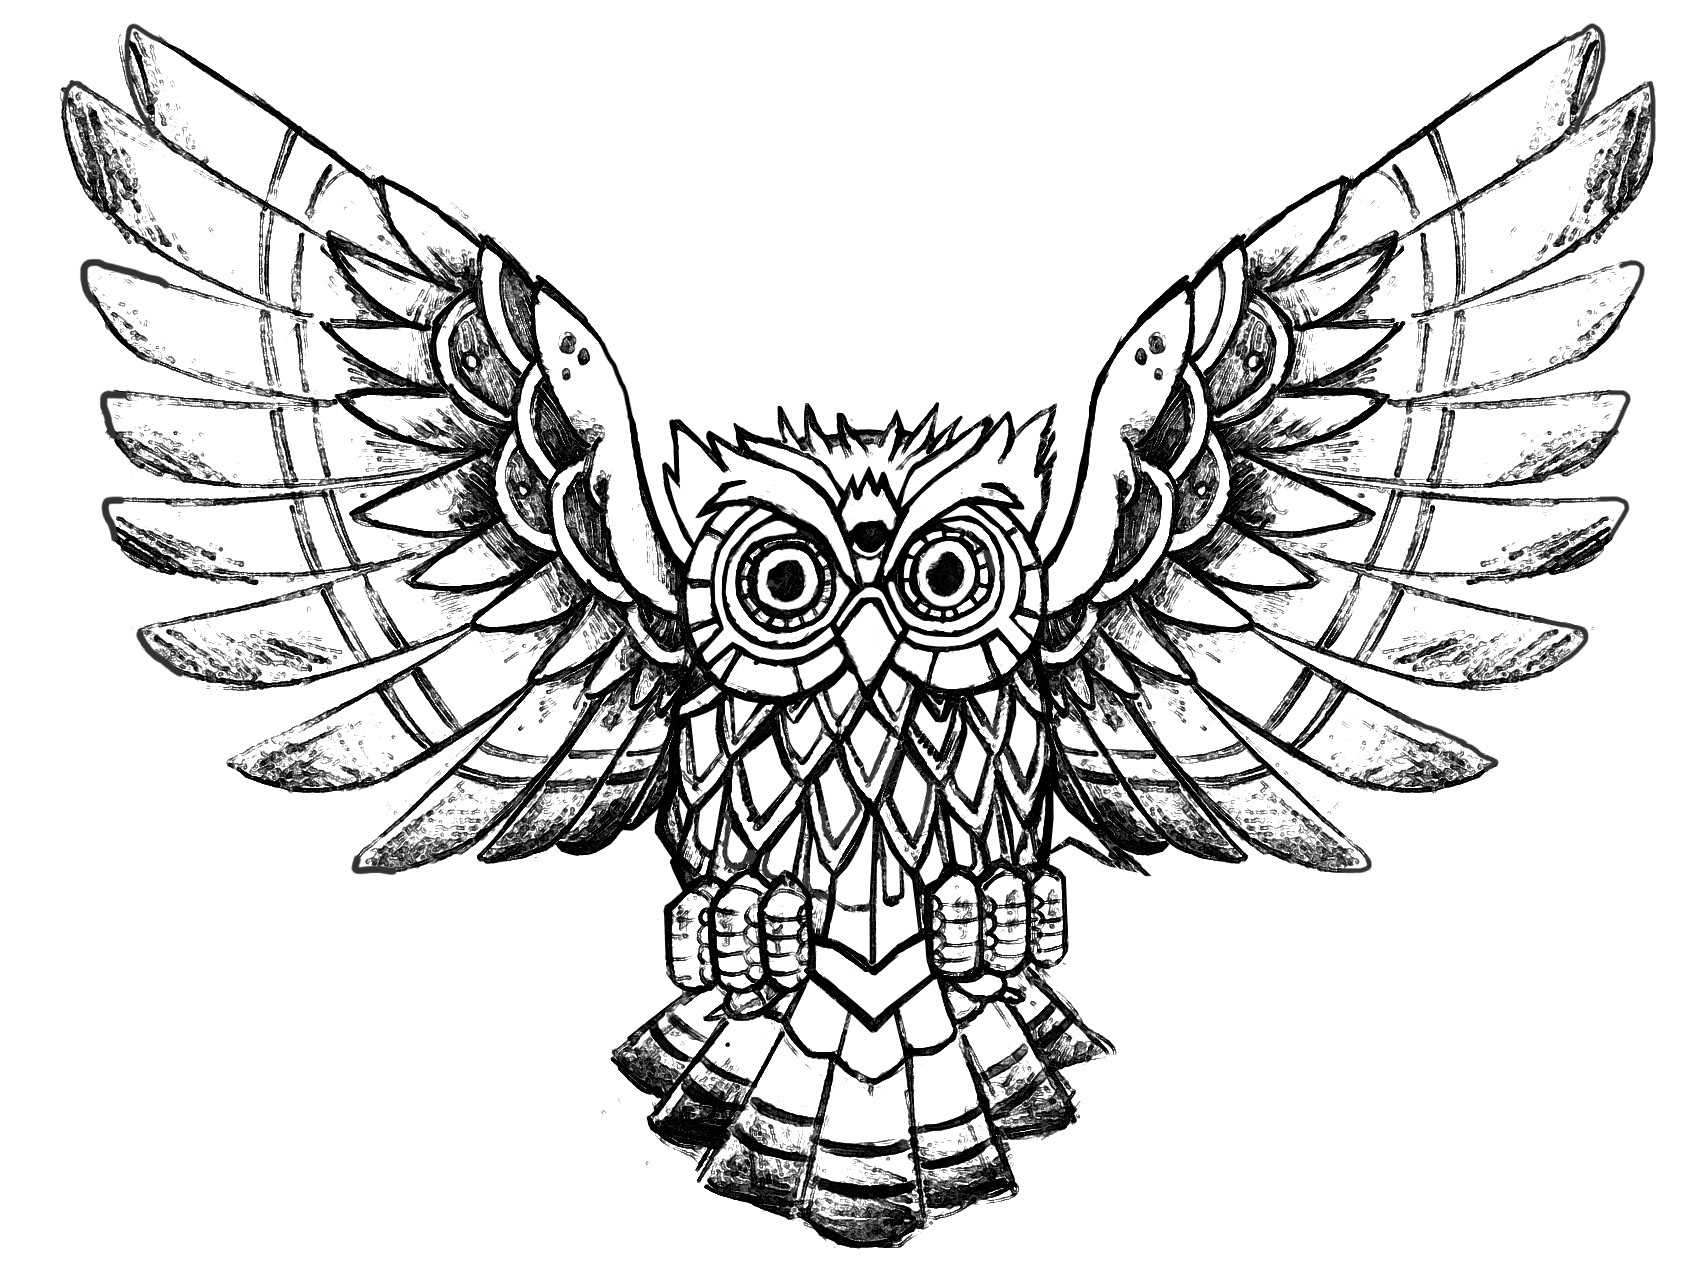 Mandala coloring pages turtles - Coloring Page Owl Raw Drawing Free To Print